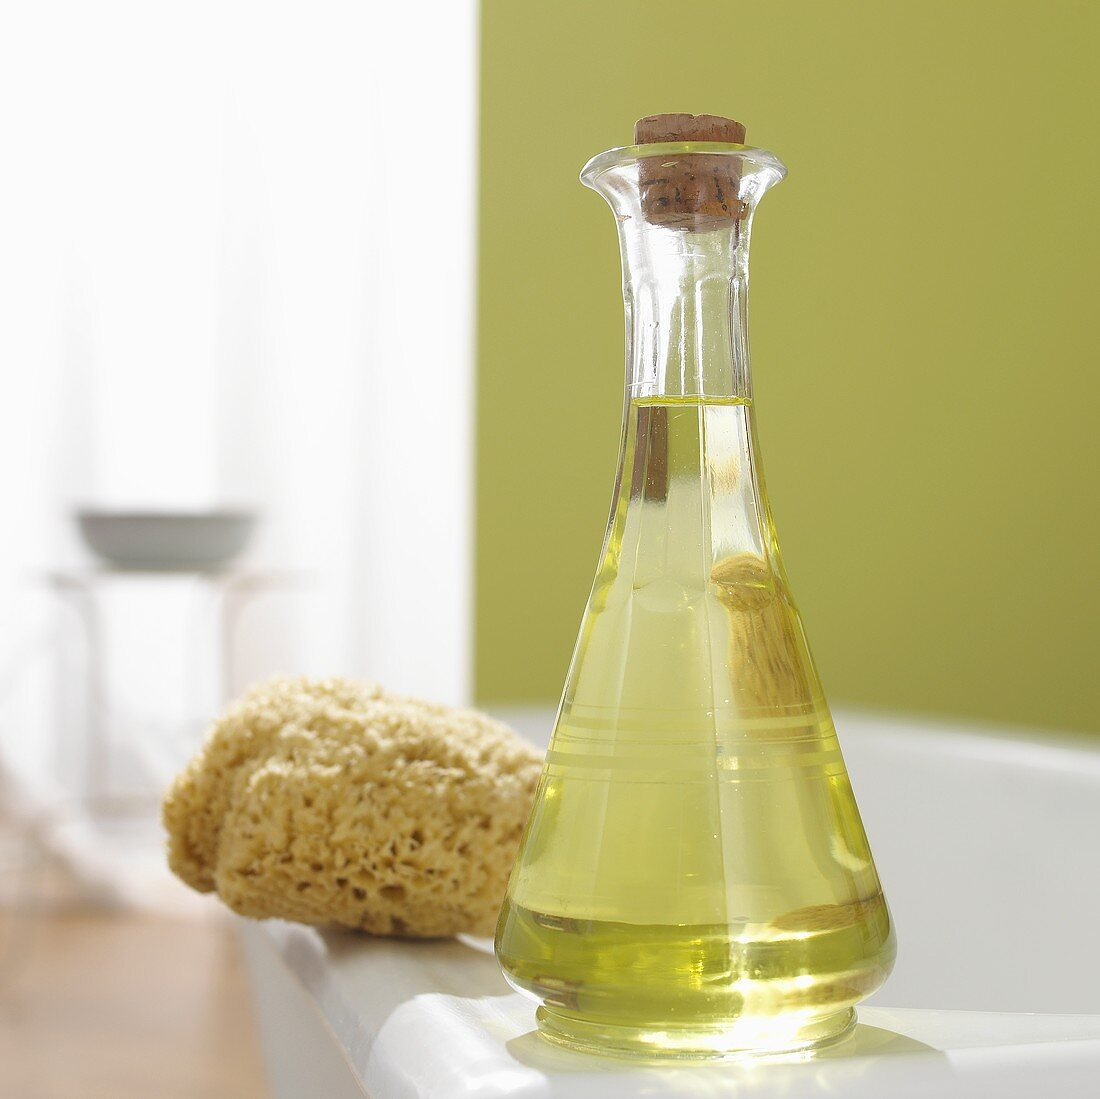 Grape seed oil and natural sponge on side of bath